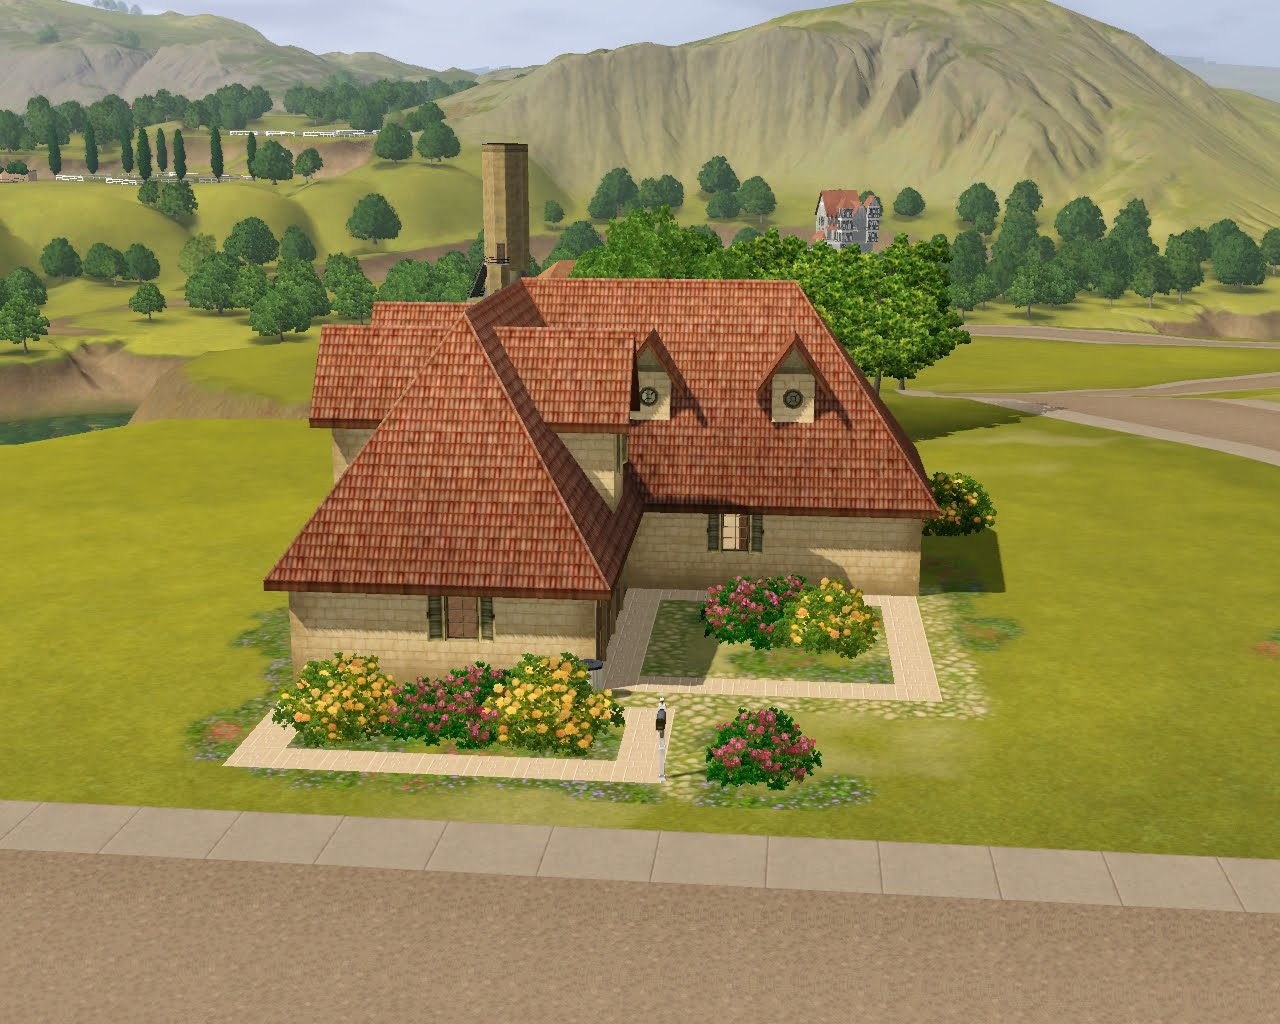 summer 39 s little sims 3 garden champs les sims the sims 3 world adventures list of empty houses